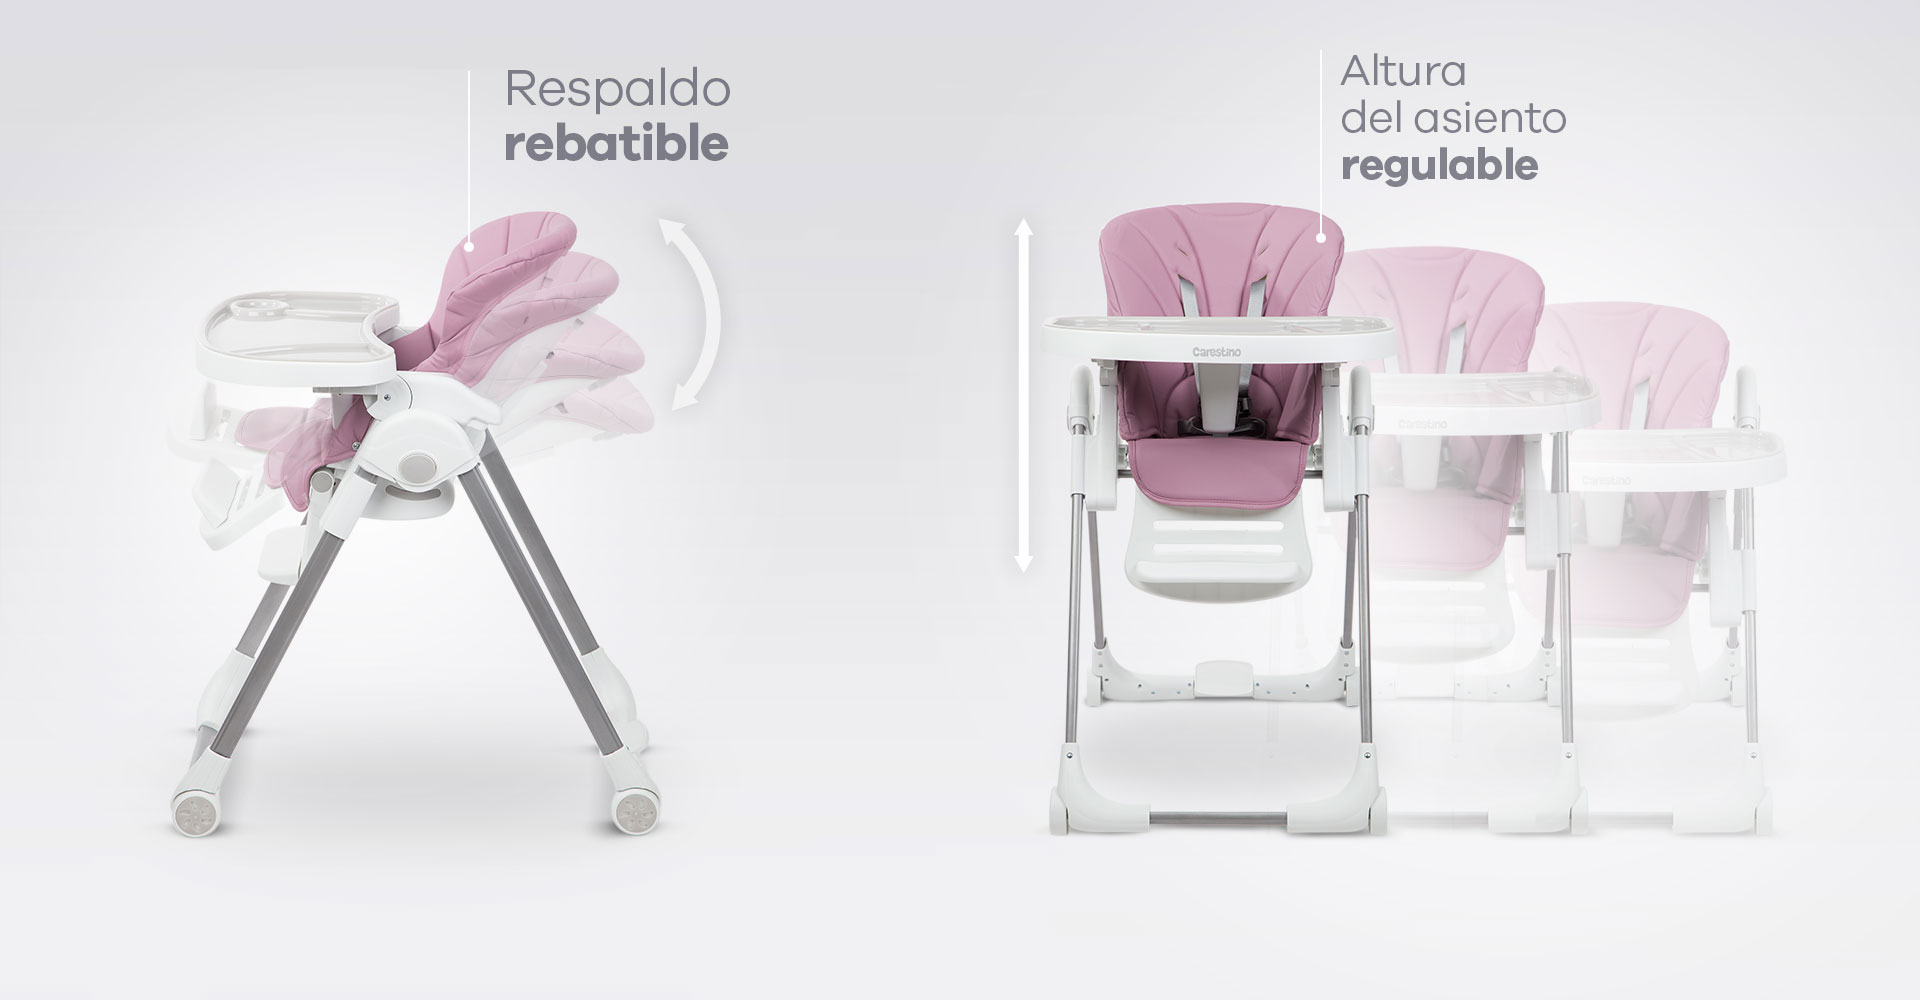 ASIENTO REGULABLE